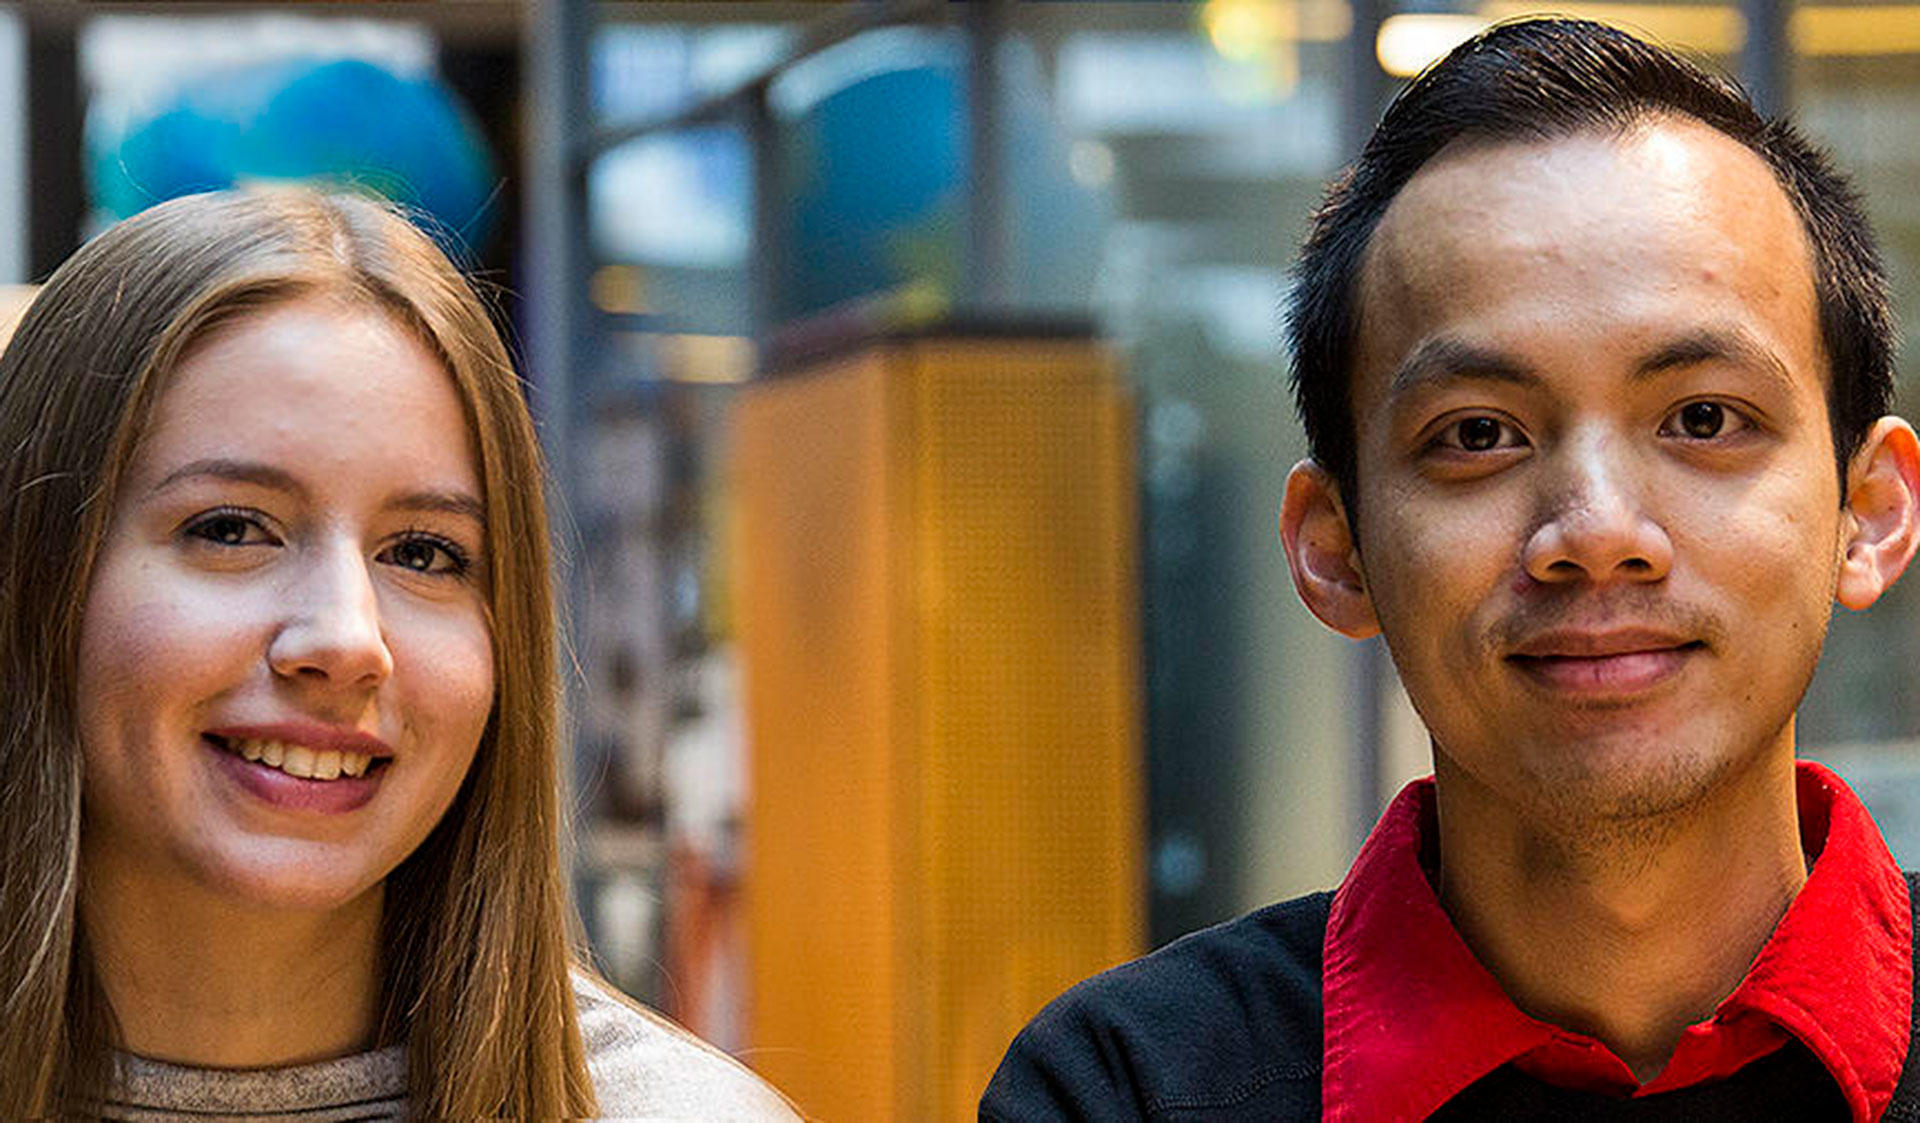 Melina Vuorinen and Thanh Dao-Cong are students in the Bachelor's Programme in Science at the University of Helsinki.